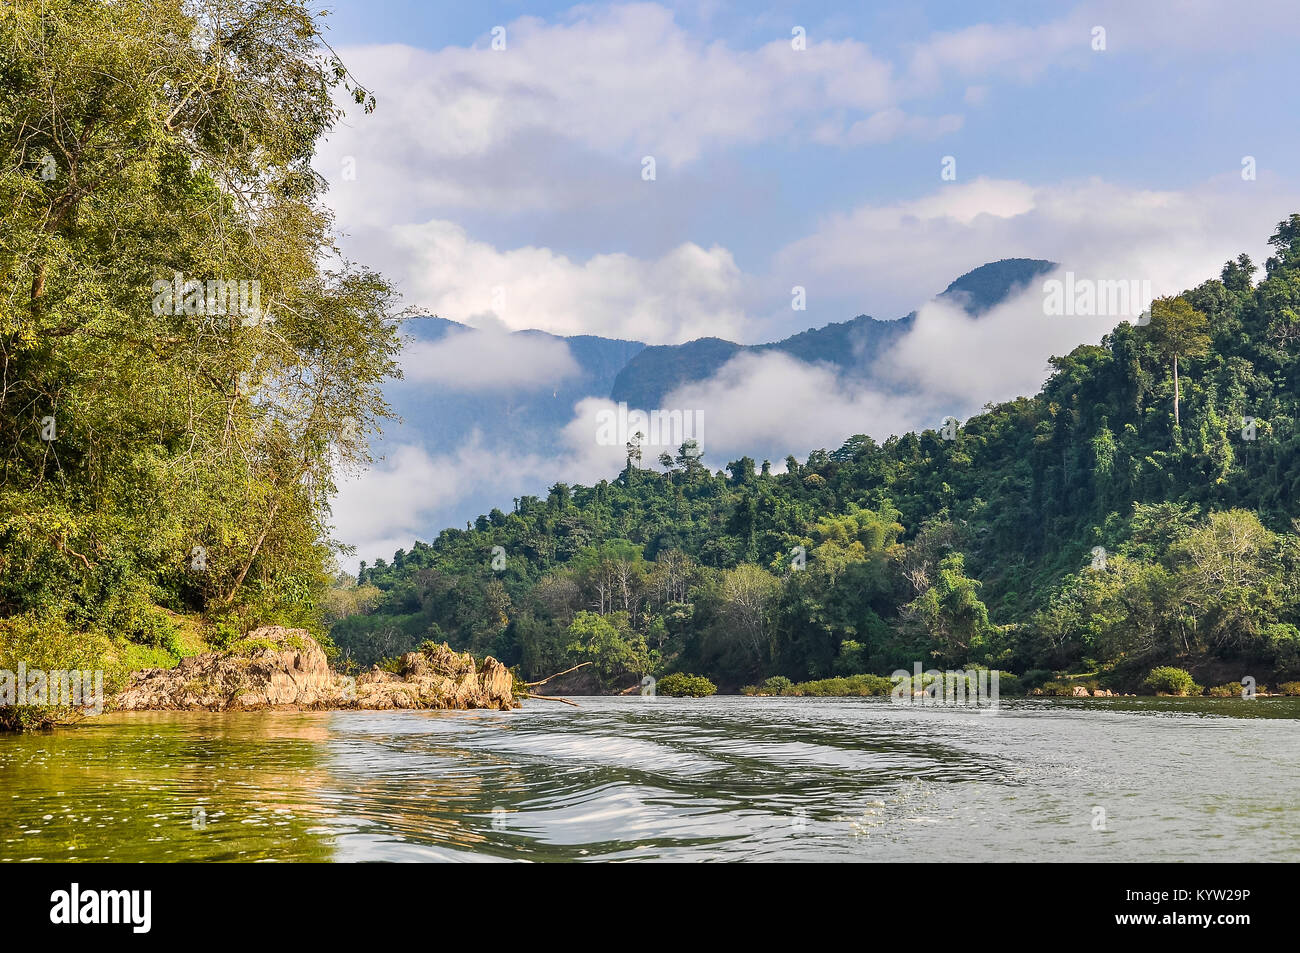 Riverside landscape on the Nam OU river in Northern Laos - Stock Image